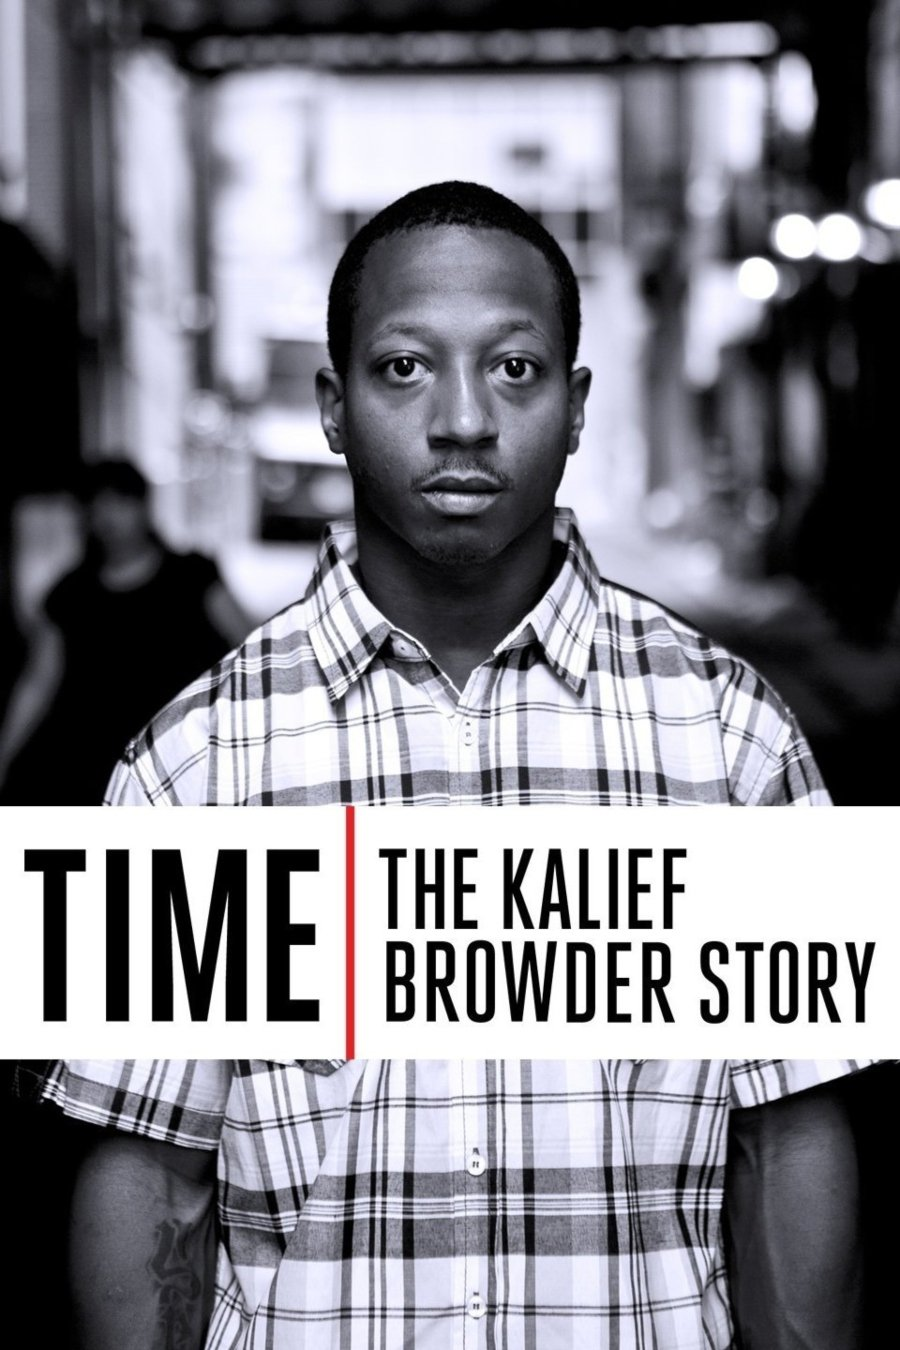 Documentales sobre el racismo / The Kalief Browder Story